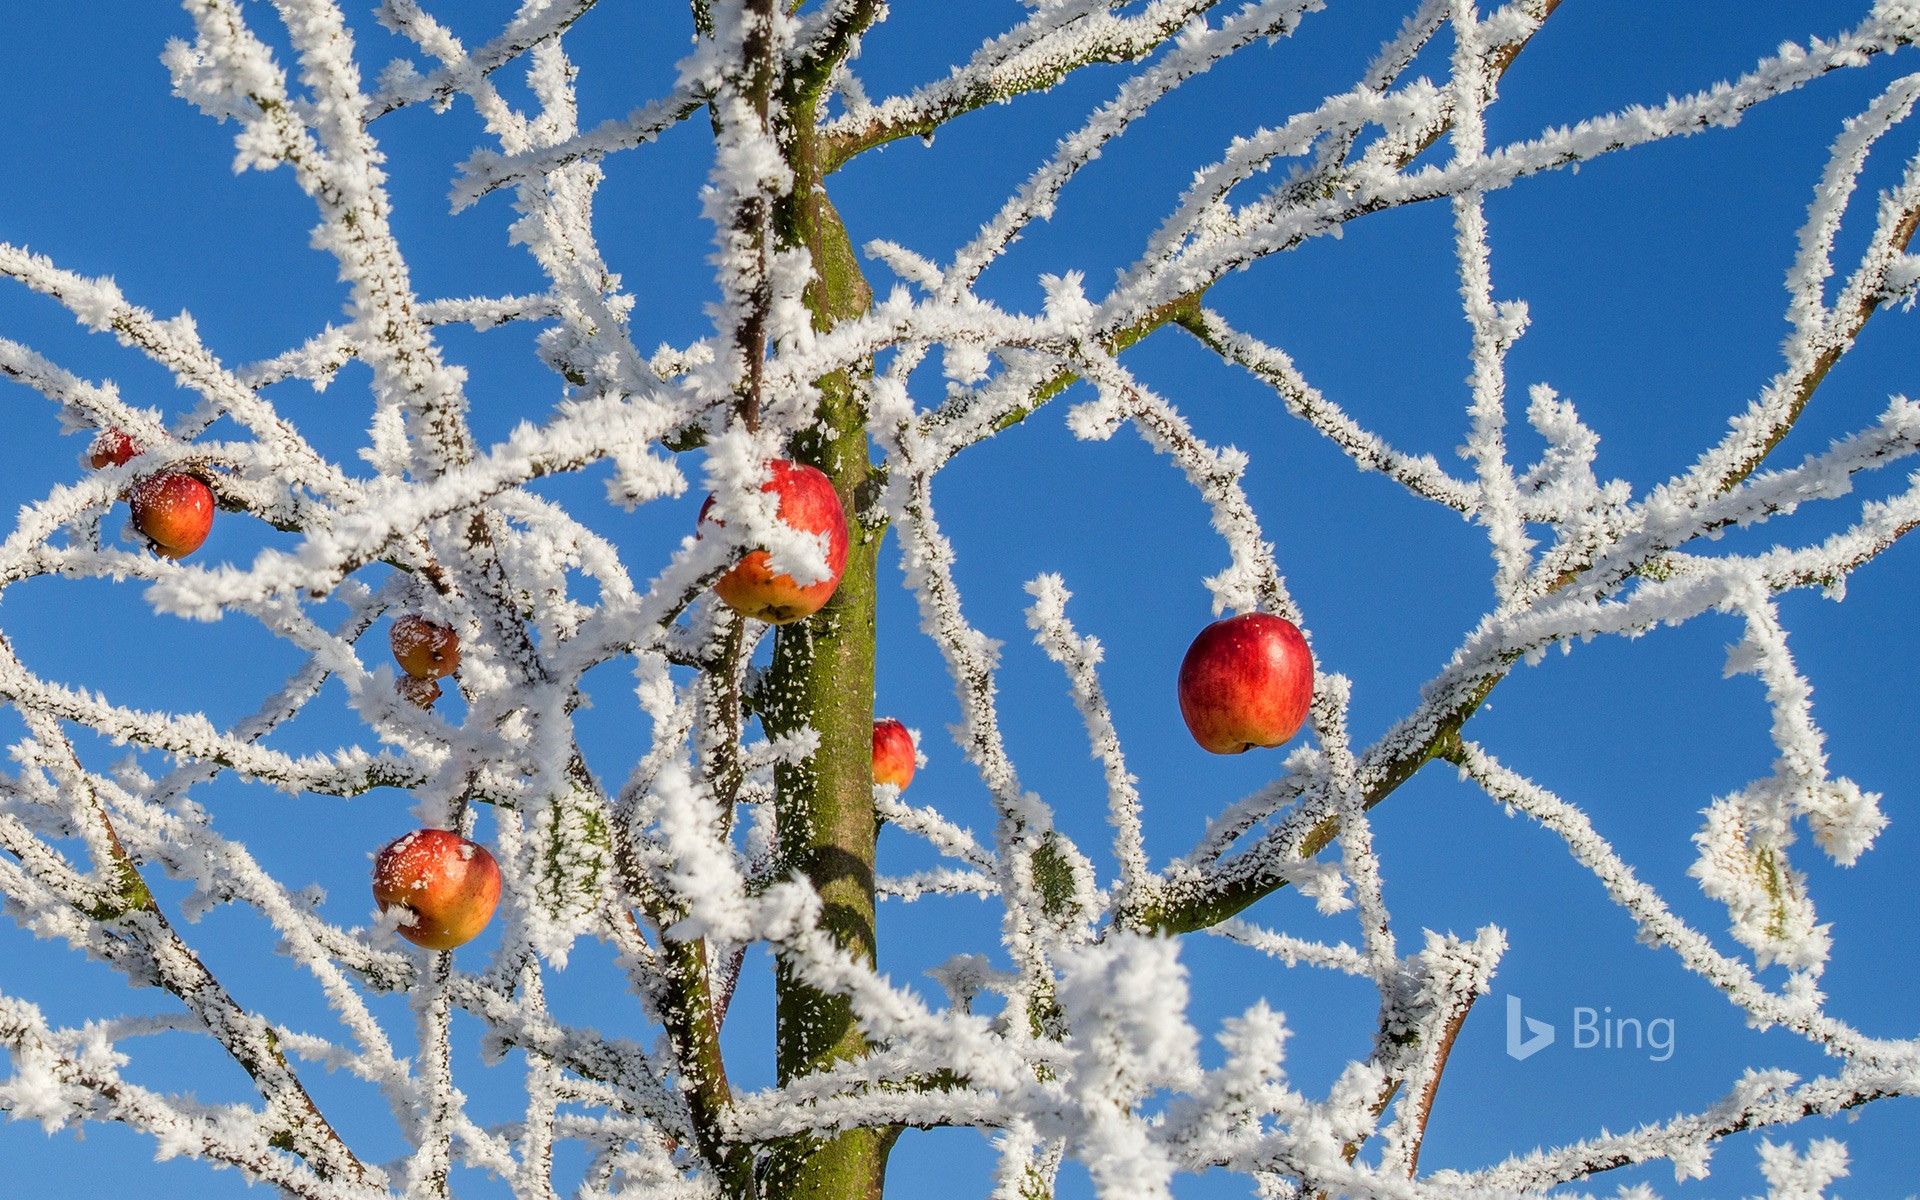 Snow Cherries from France